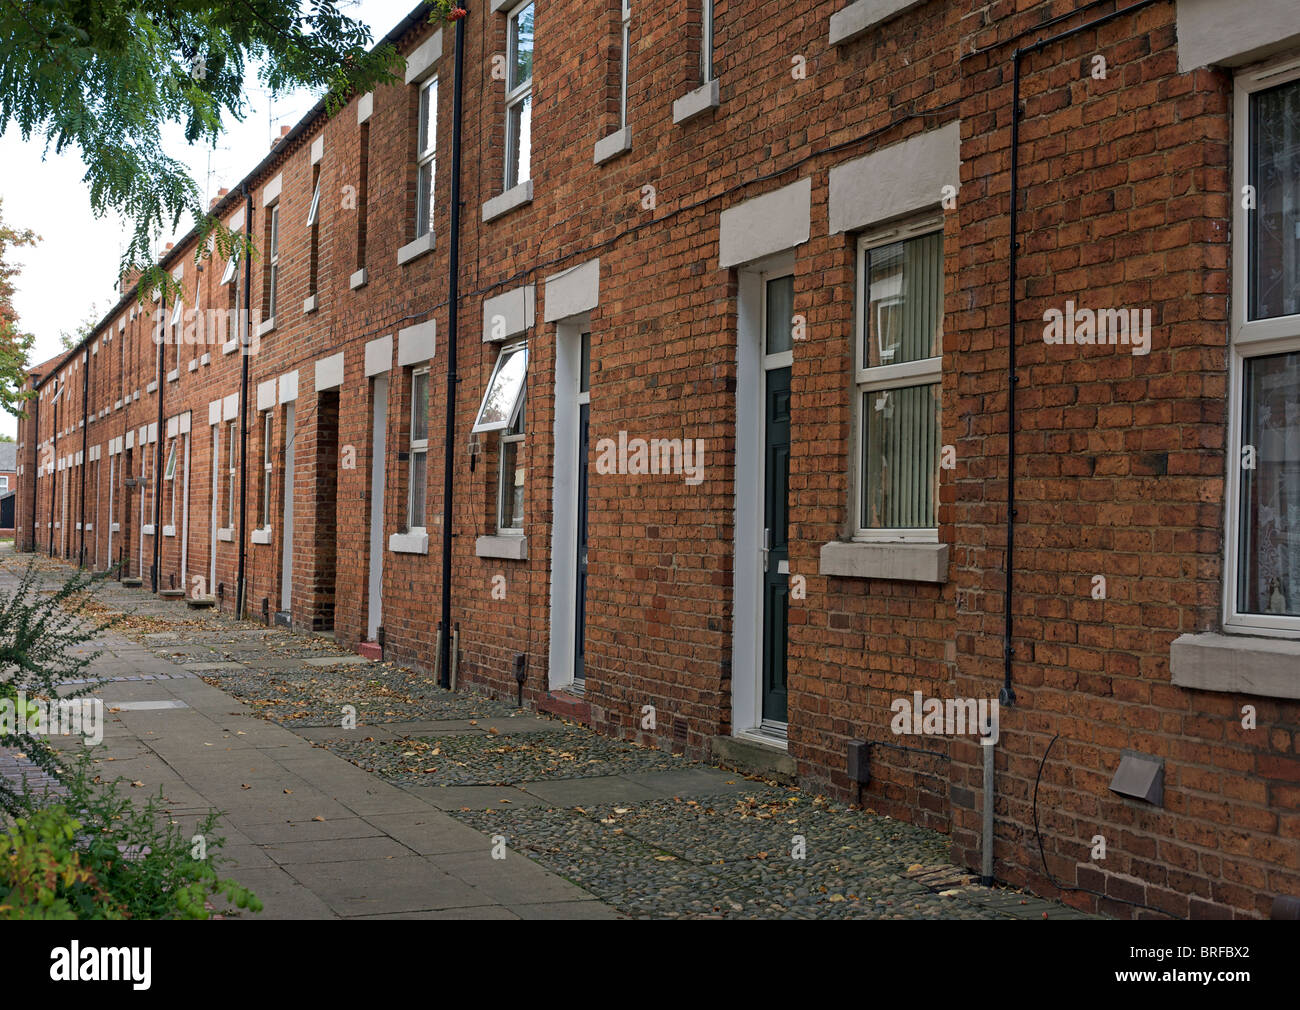 terrace of miner's cottages, Eastwood, Nottinghamshire - Stock Image